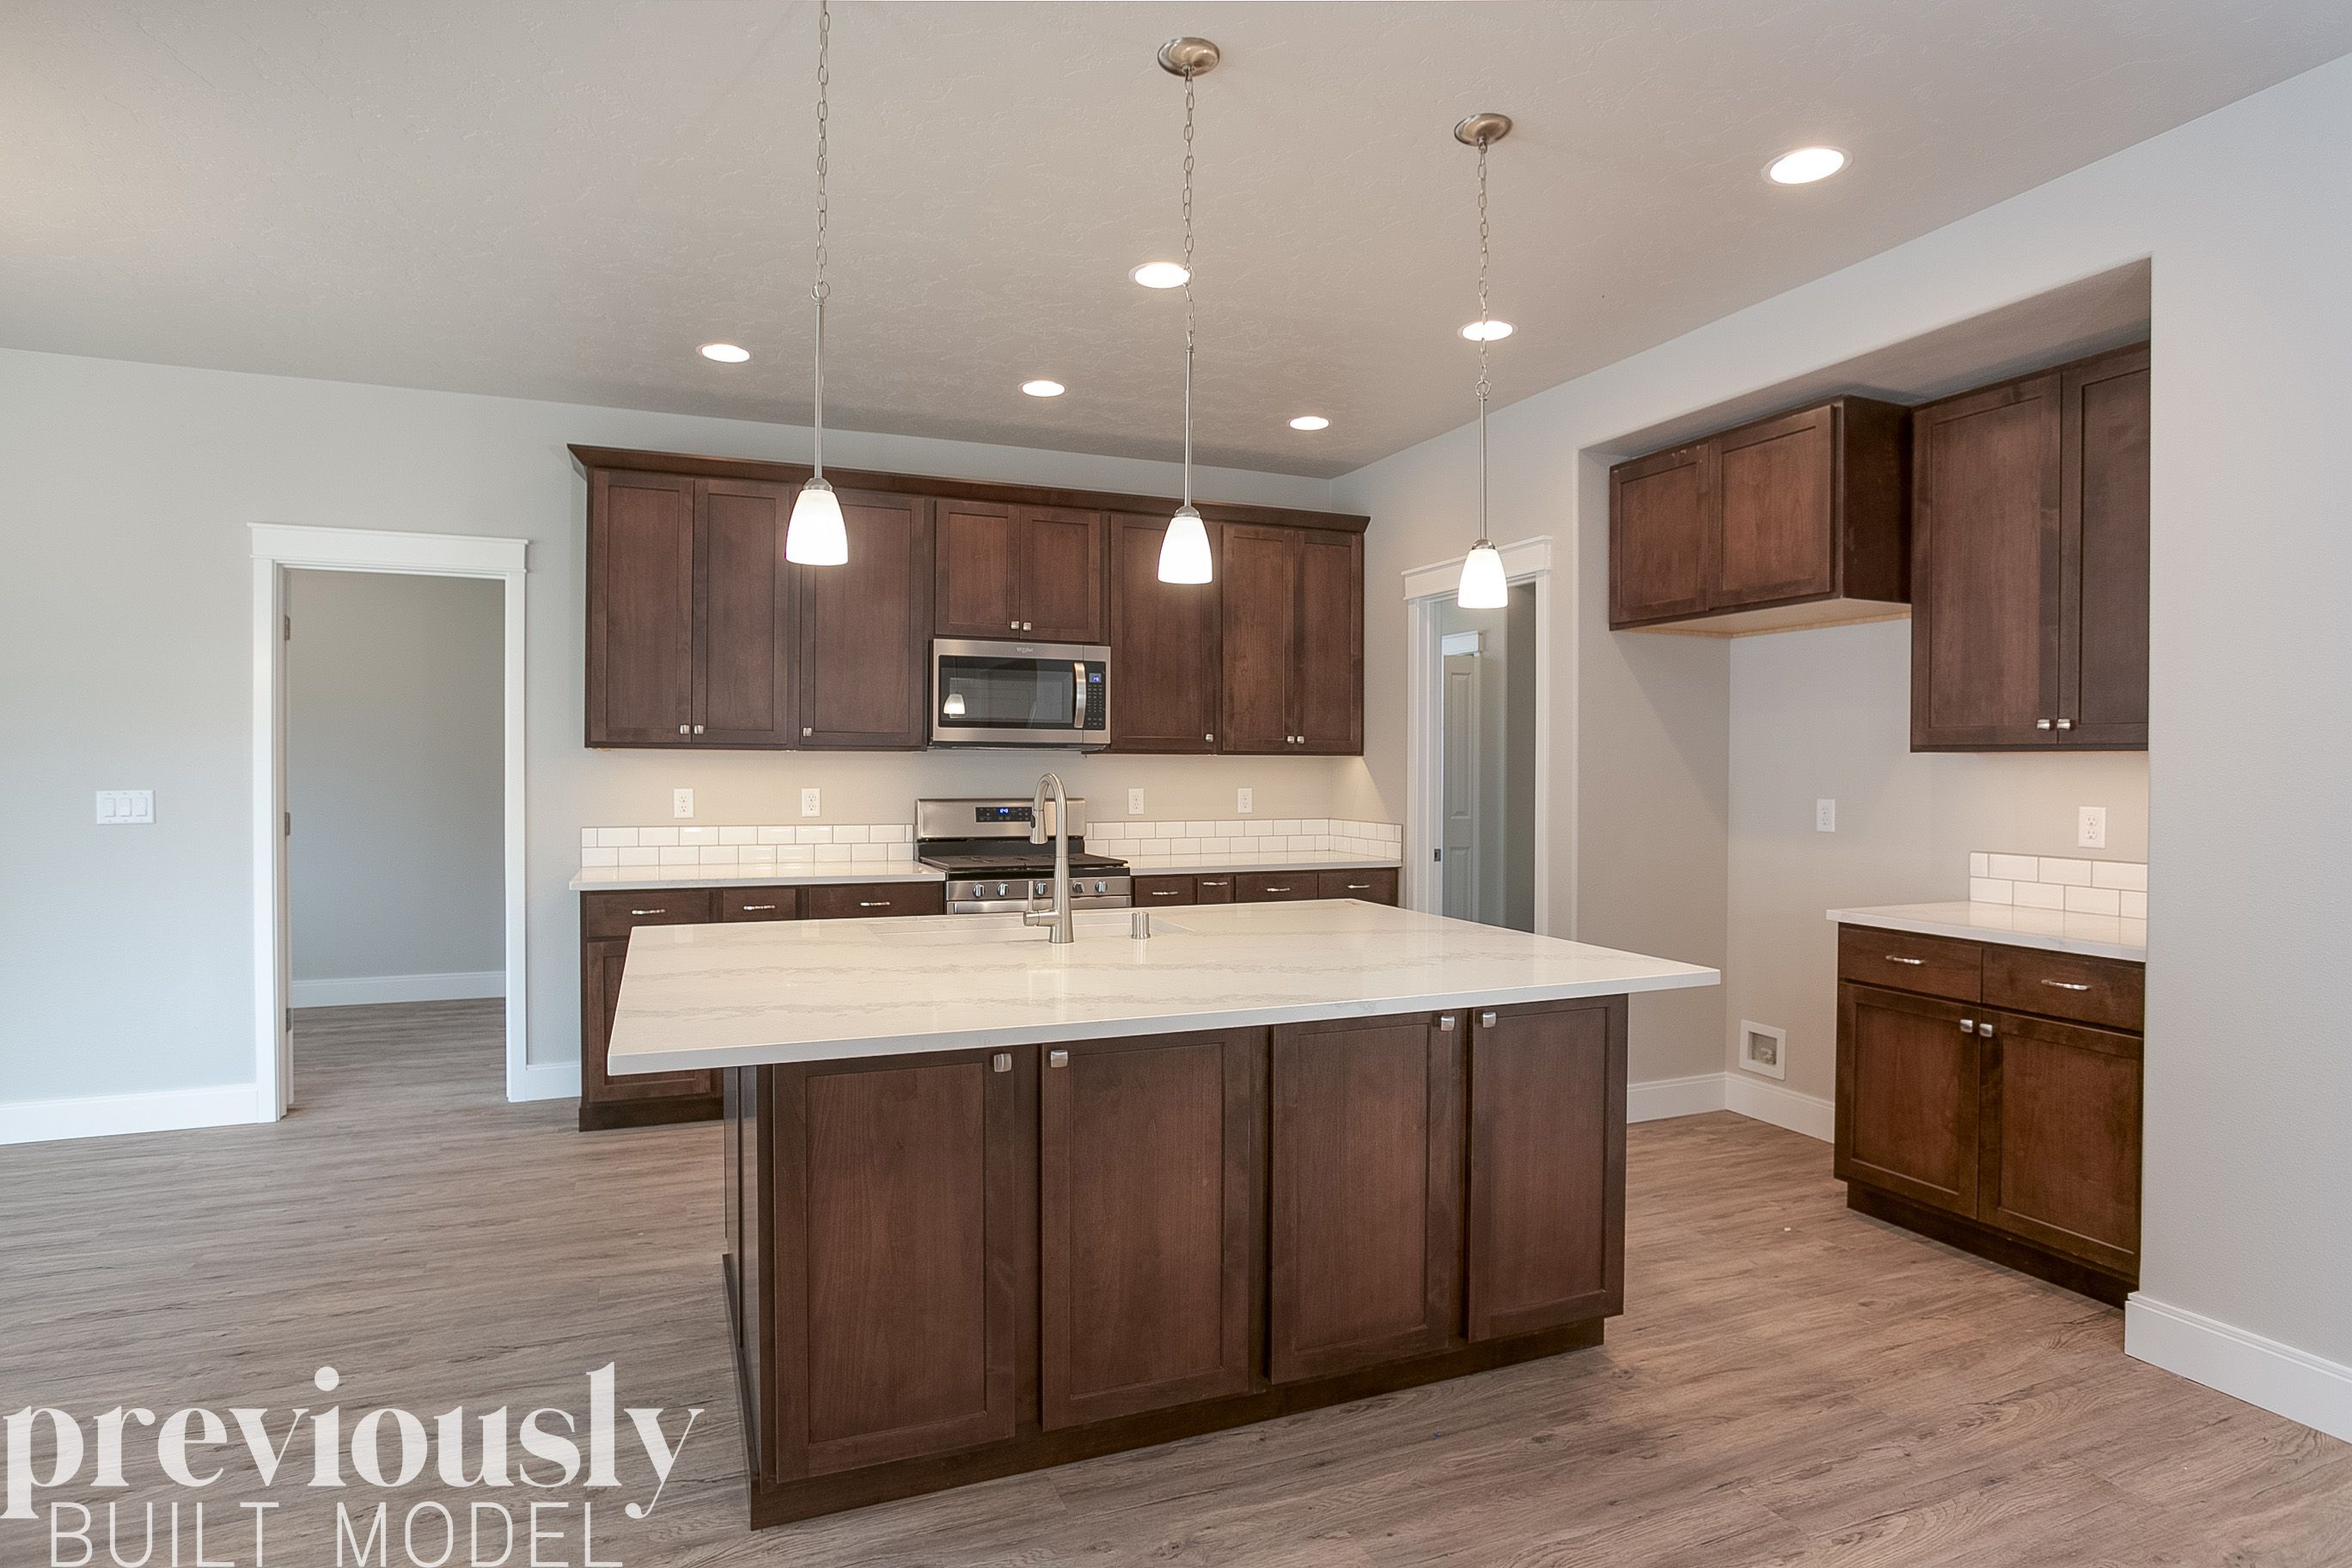 Kitchen featured in The Olympia By RYN Built Homes in Richland, WA